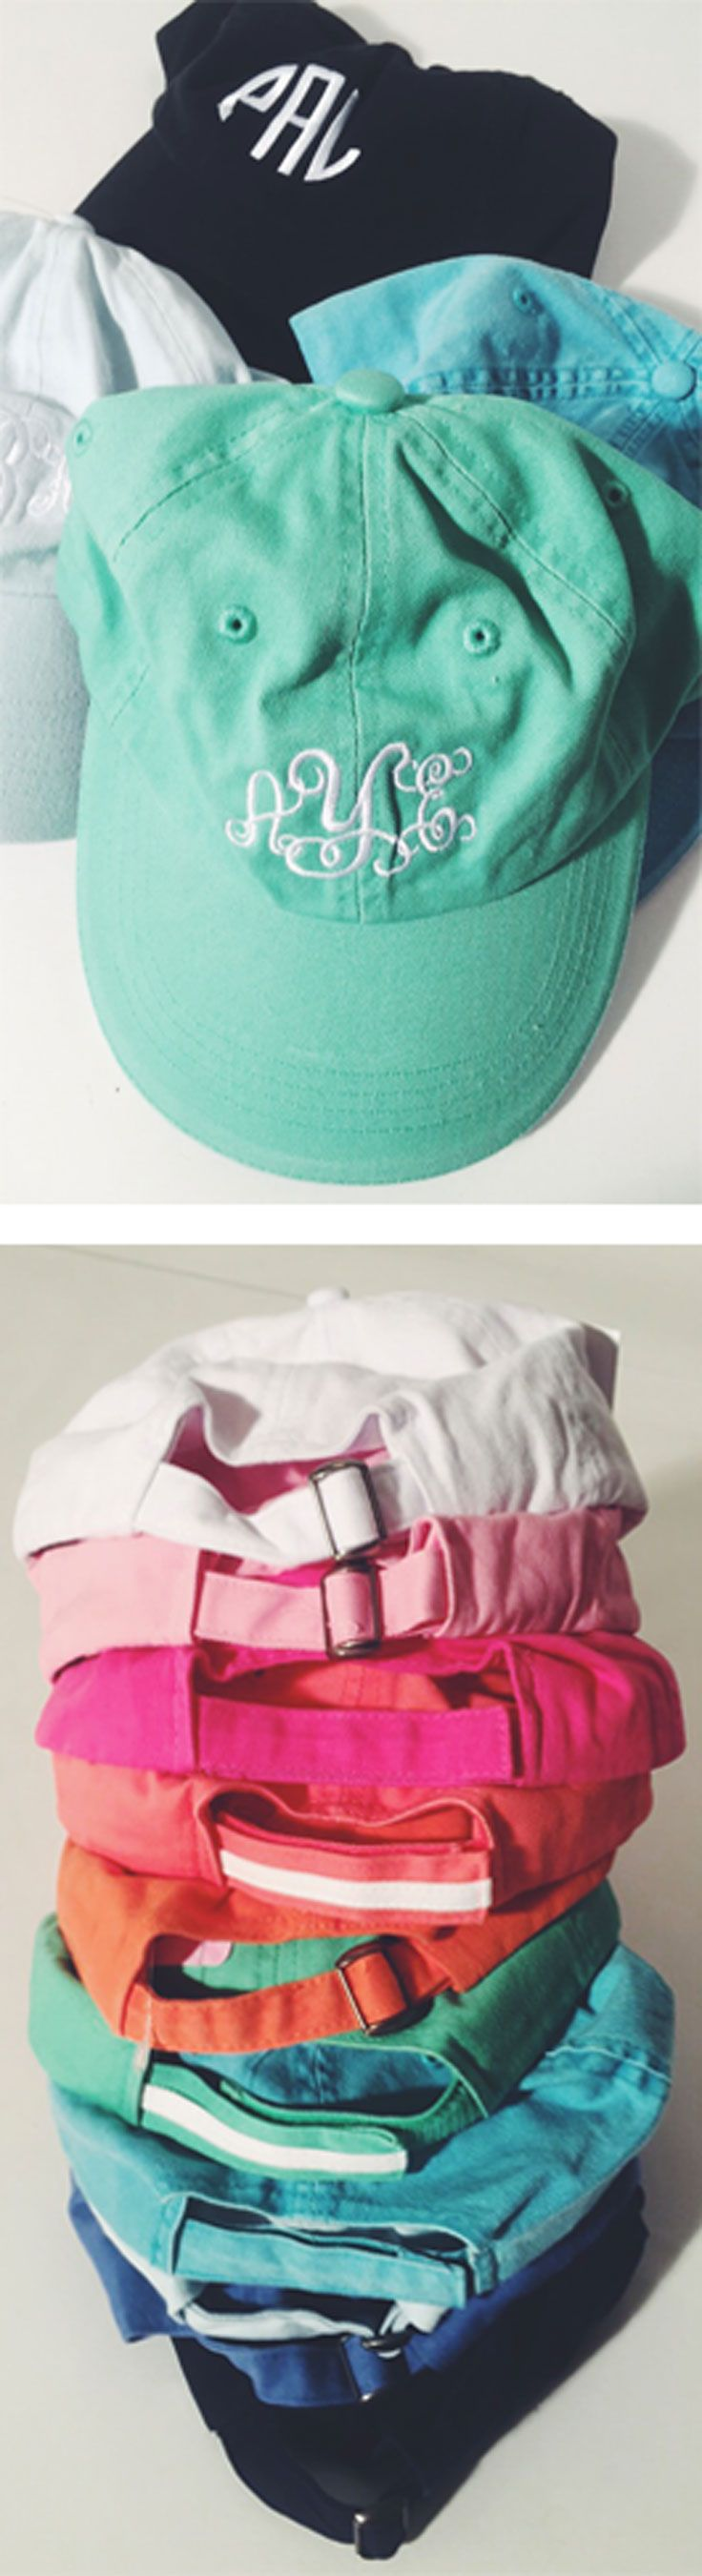 Love this in teal and coral!! With a great font JHN! Marleylilly.com! #monogrammedbaseballhat #preppy